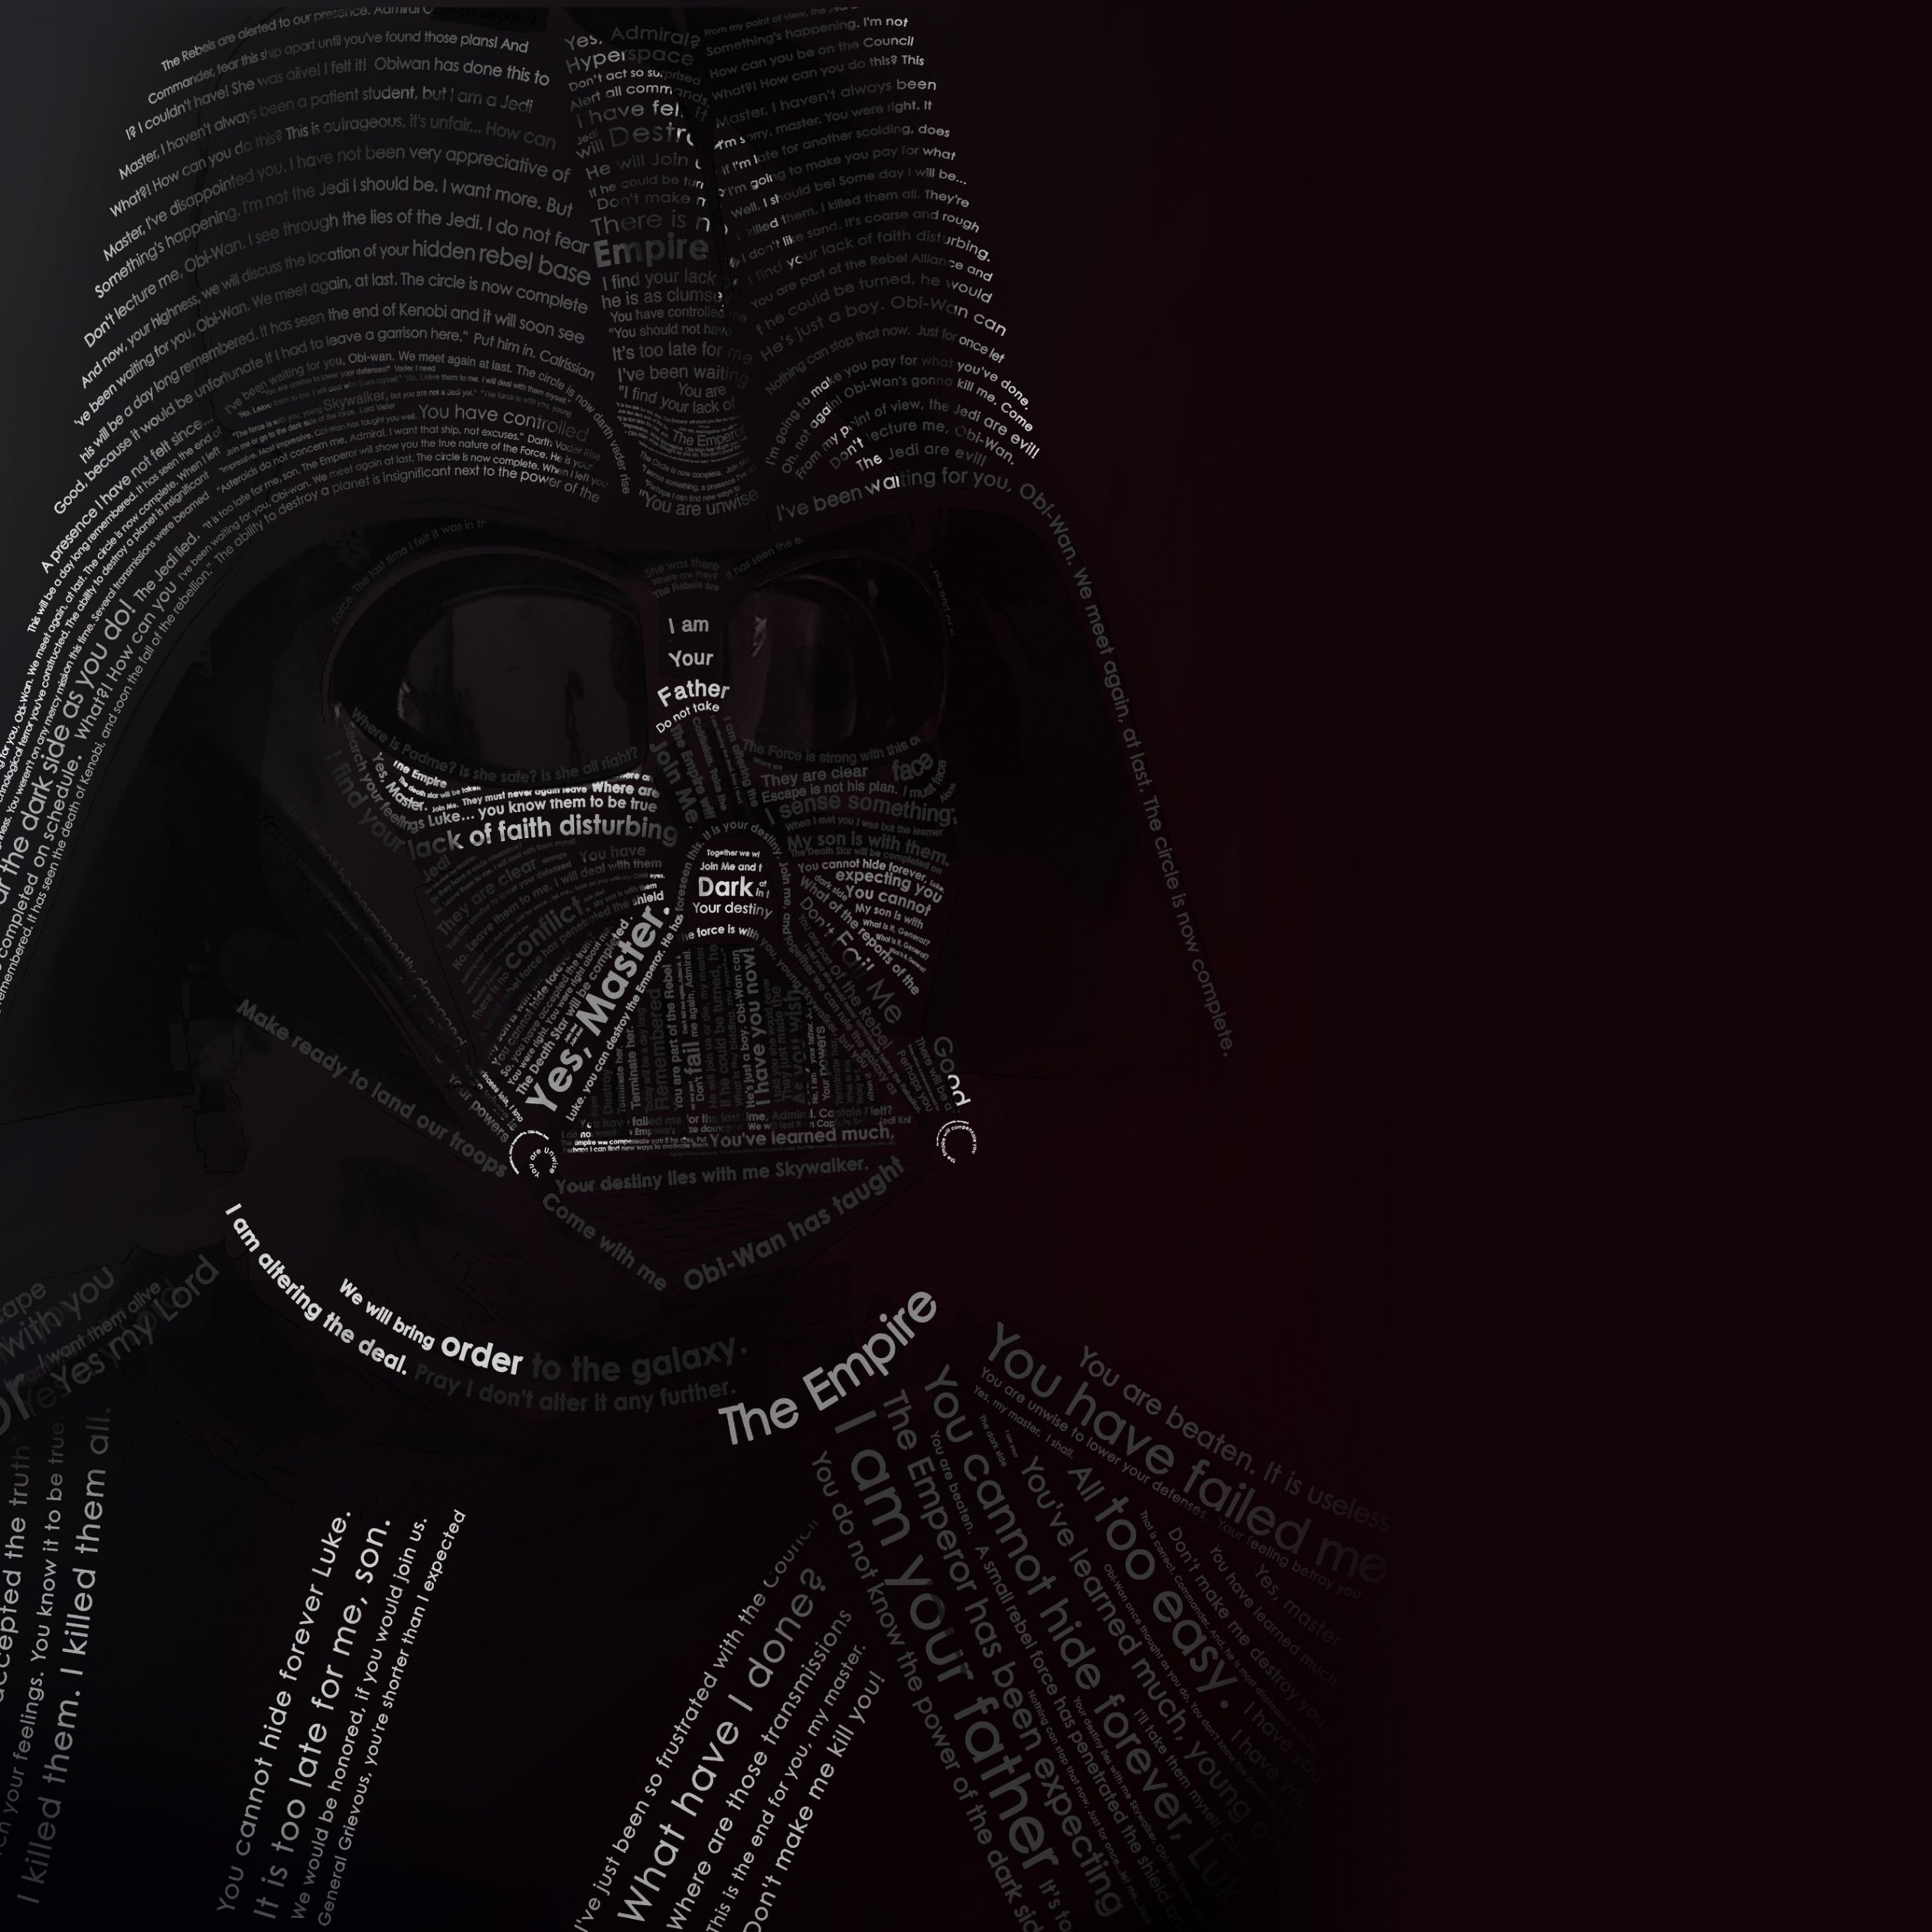 Darth Vader Typographic Portrait Wallpaper for Apple iPad 4